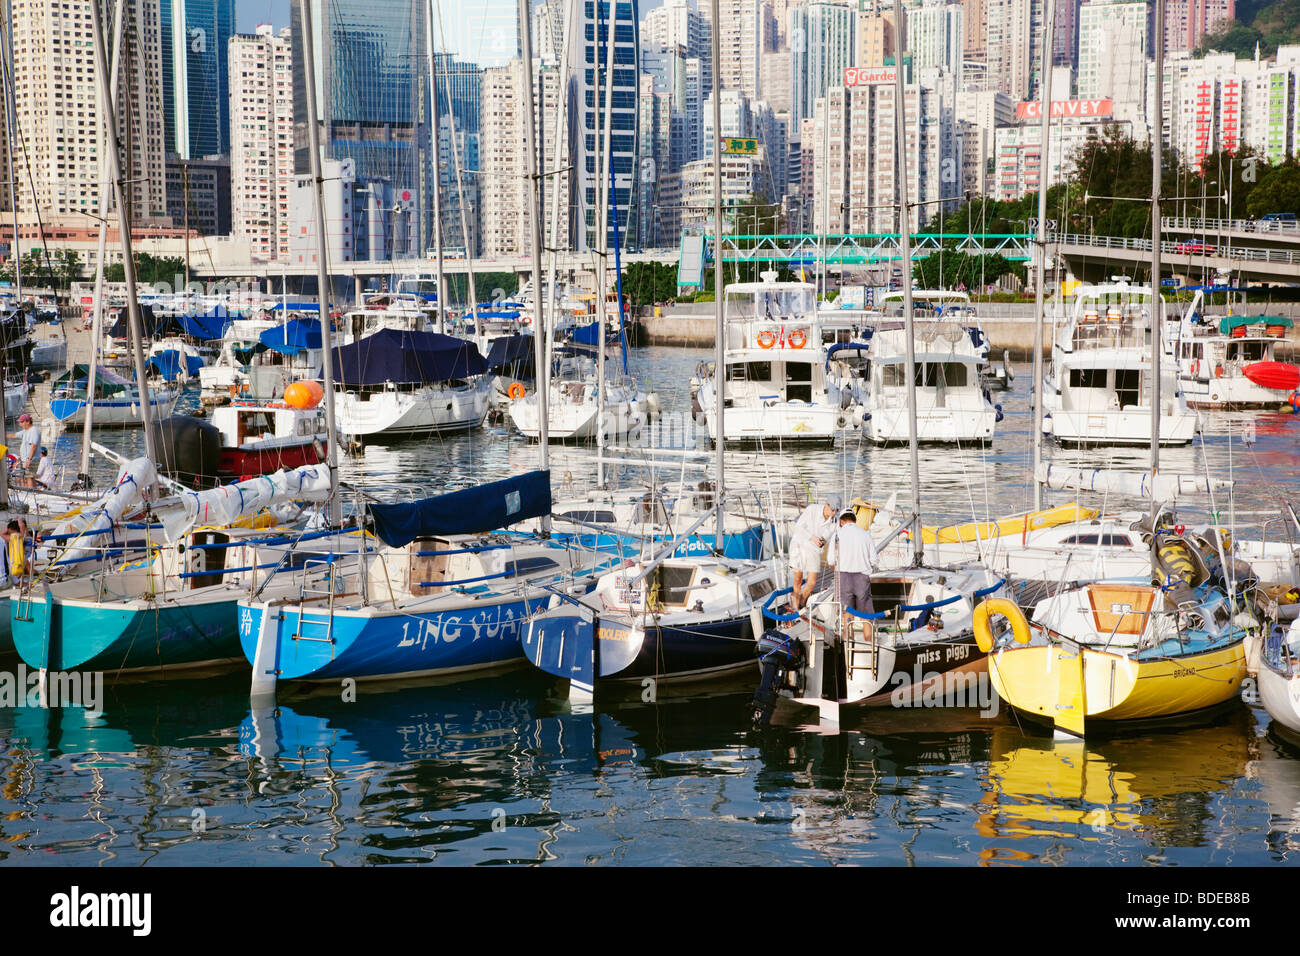 Royal Hong Kong Yacht Club en Hong Kong, China. Imagen De Stock